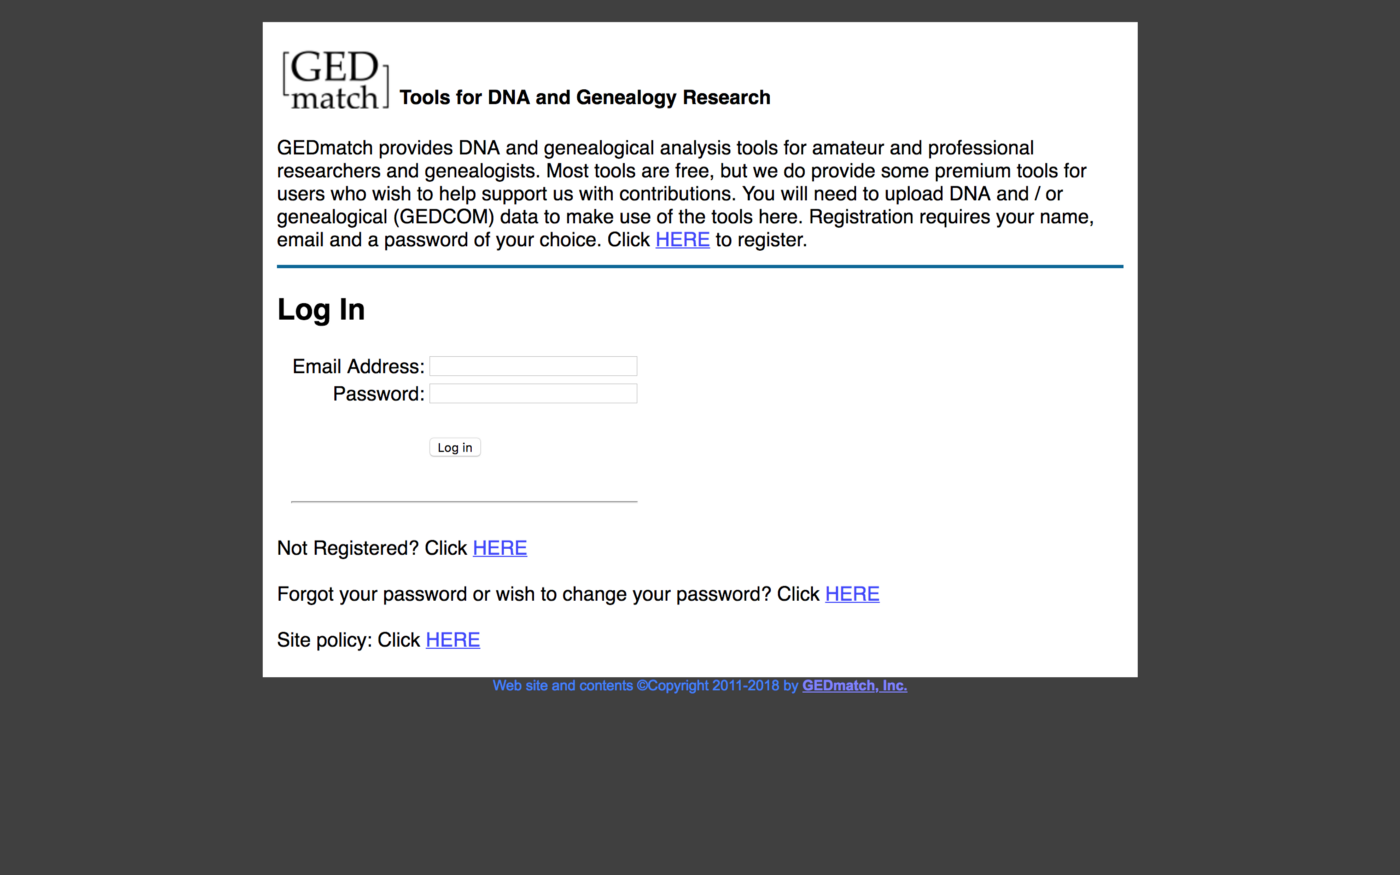 Sites you can upload raw DNA data to get additional analysis (for